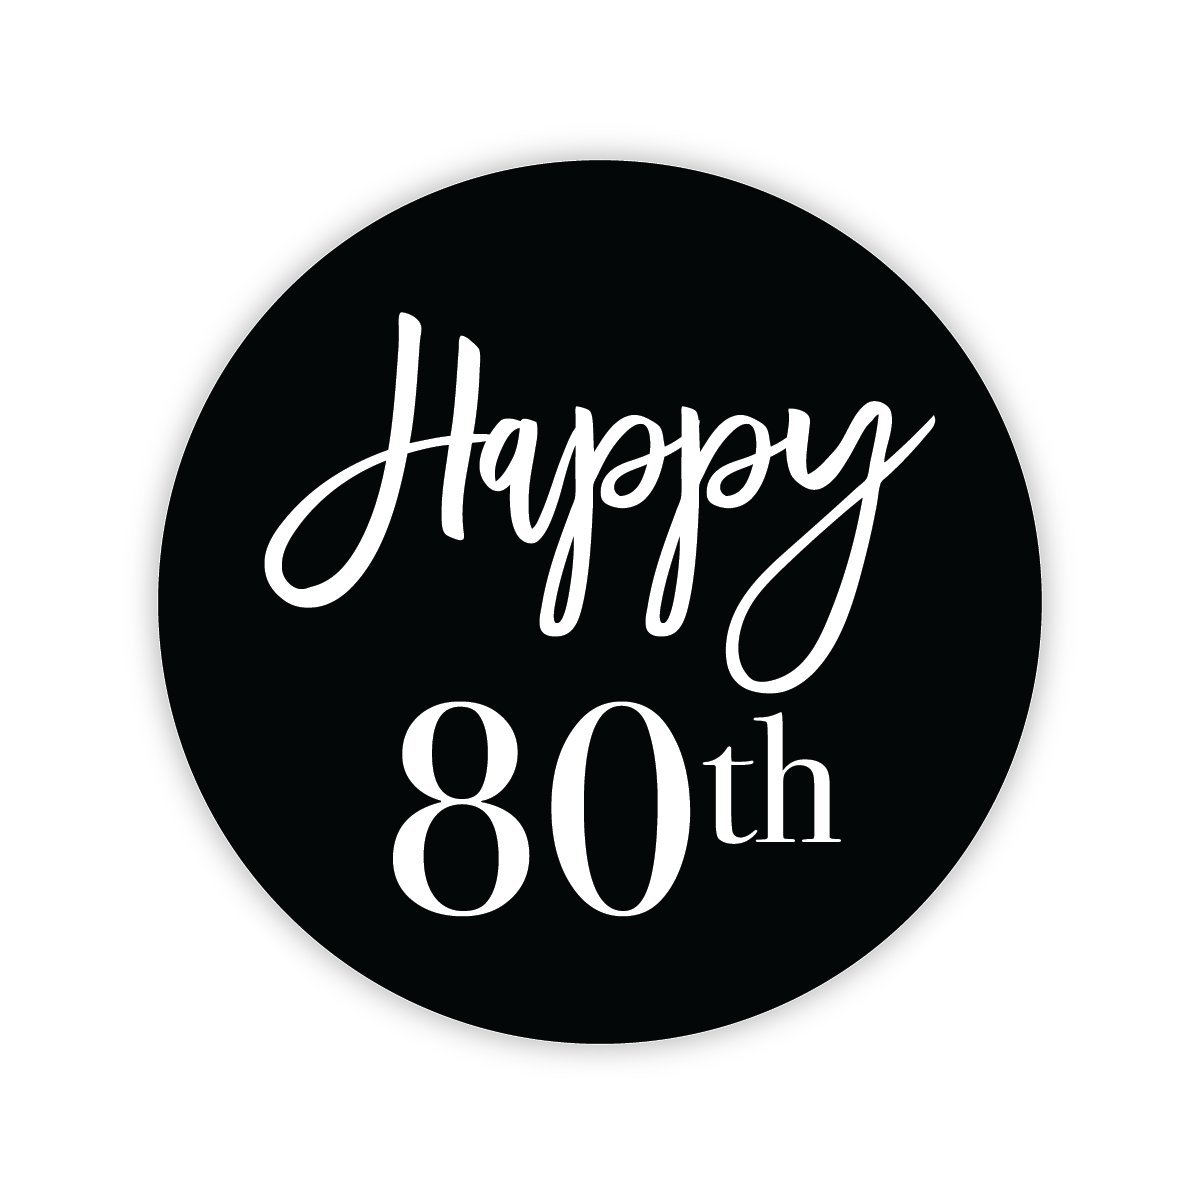 #631-30a 24-2 30th Birthday Milestone Birthday Party Favor Stickers Orange Umbrella Co